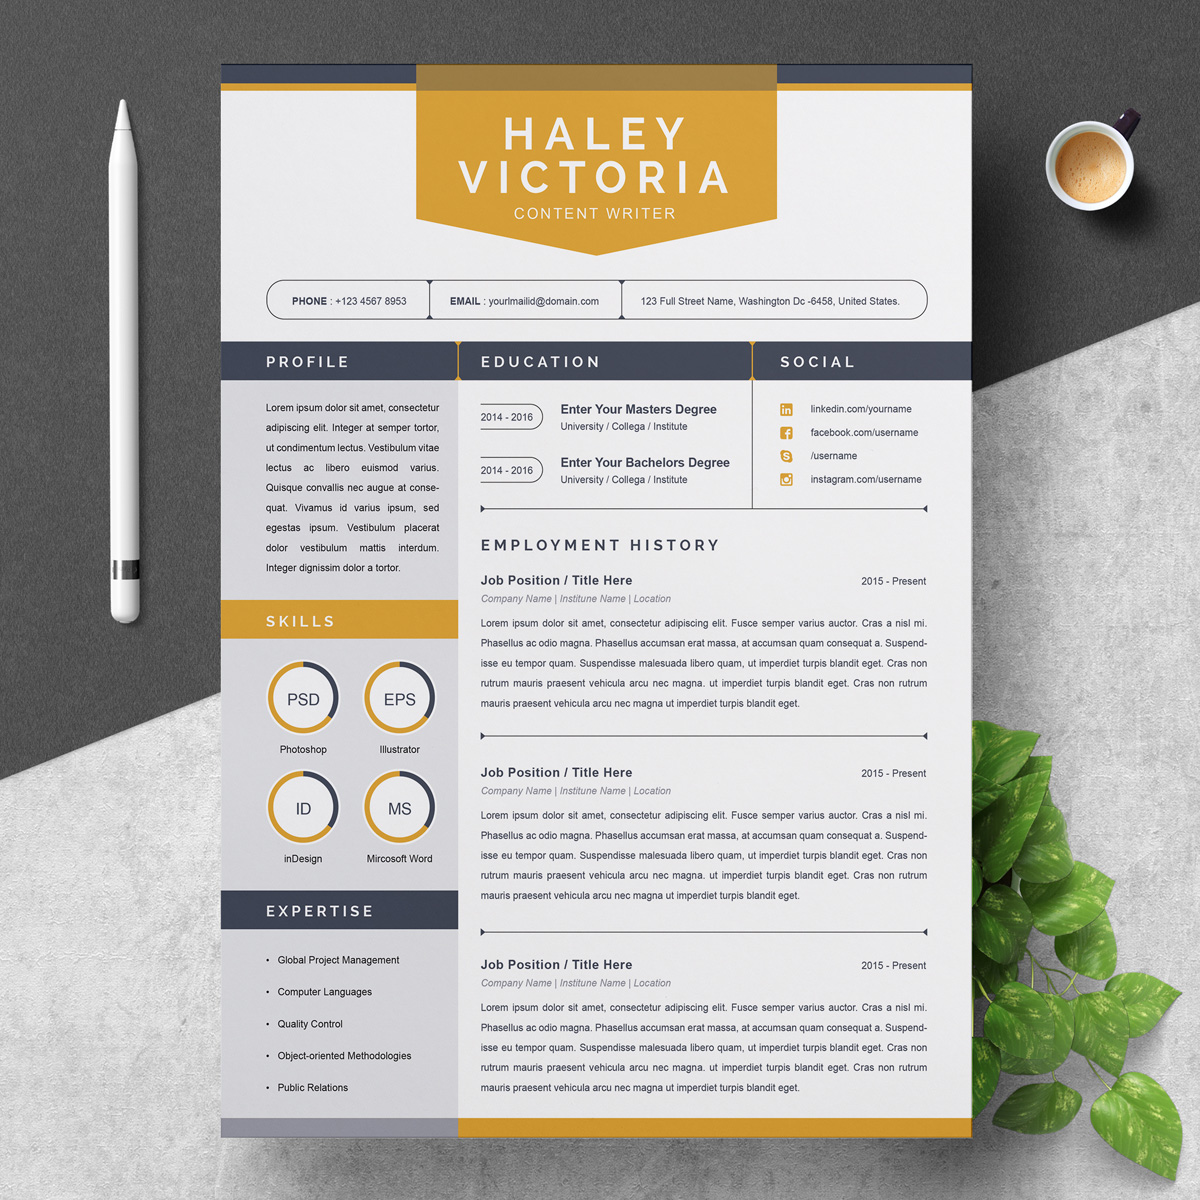 https://s3u.tmimgcdn.com/1860567-1554009801583_01_Clean-Professional-Creative-and-Modern-Resume-CV-Curriculum-Vitae-Design-Template-MS-Word-Apple-Pages-PSD-Free-Download.jpg